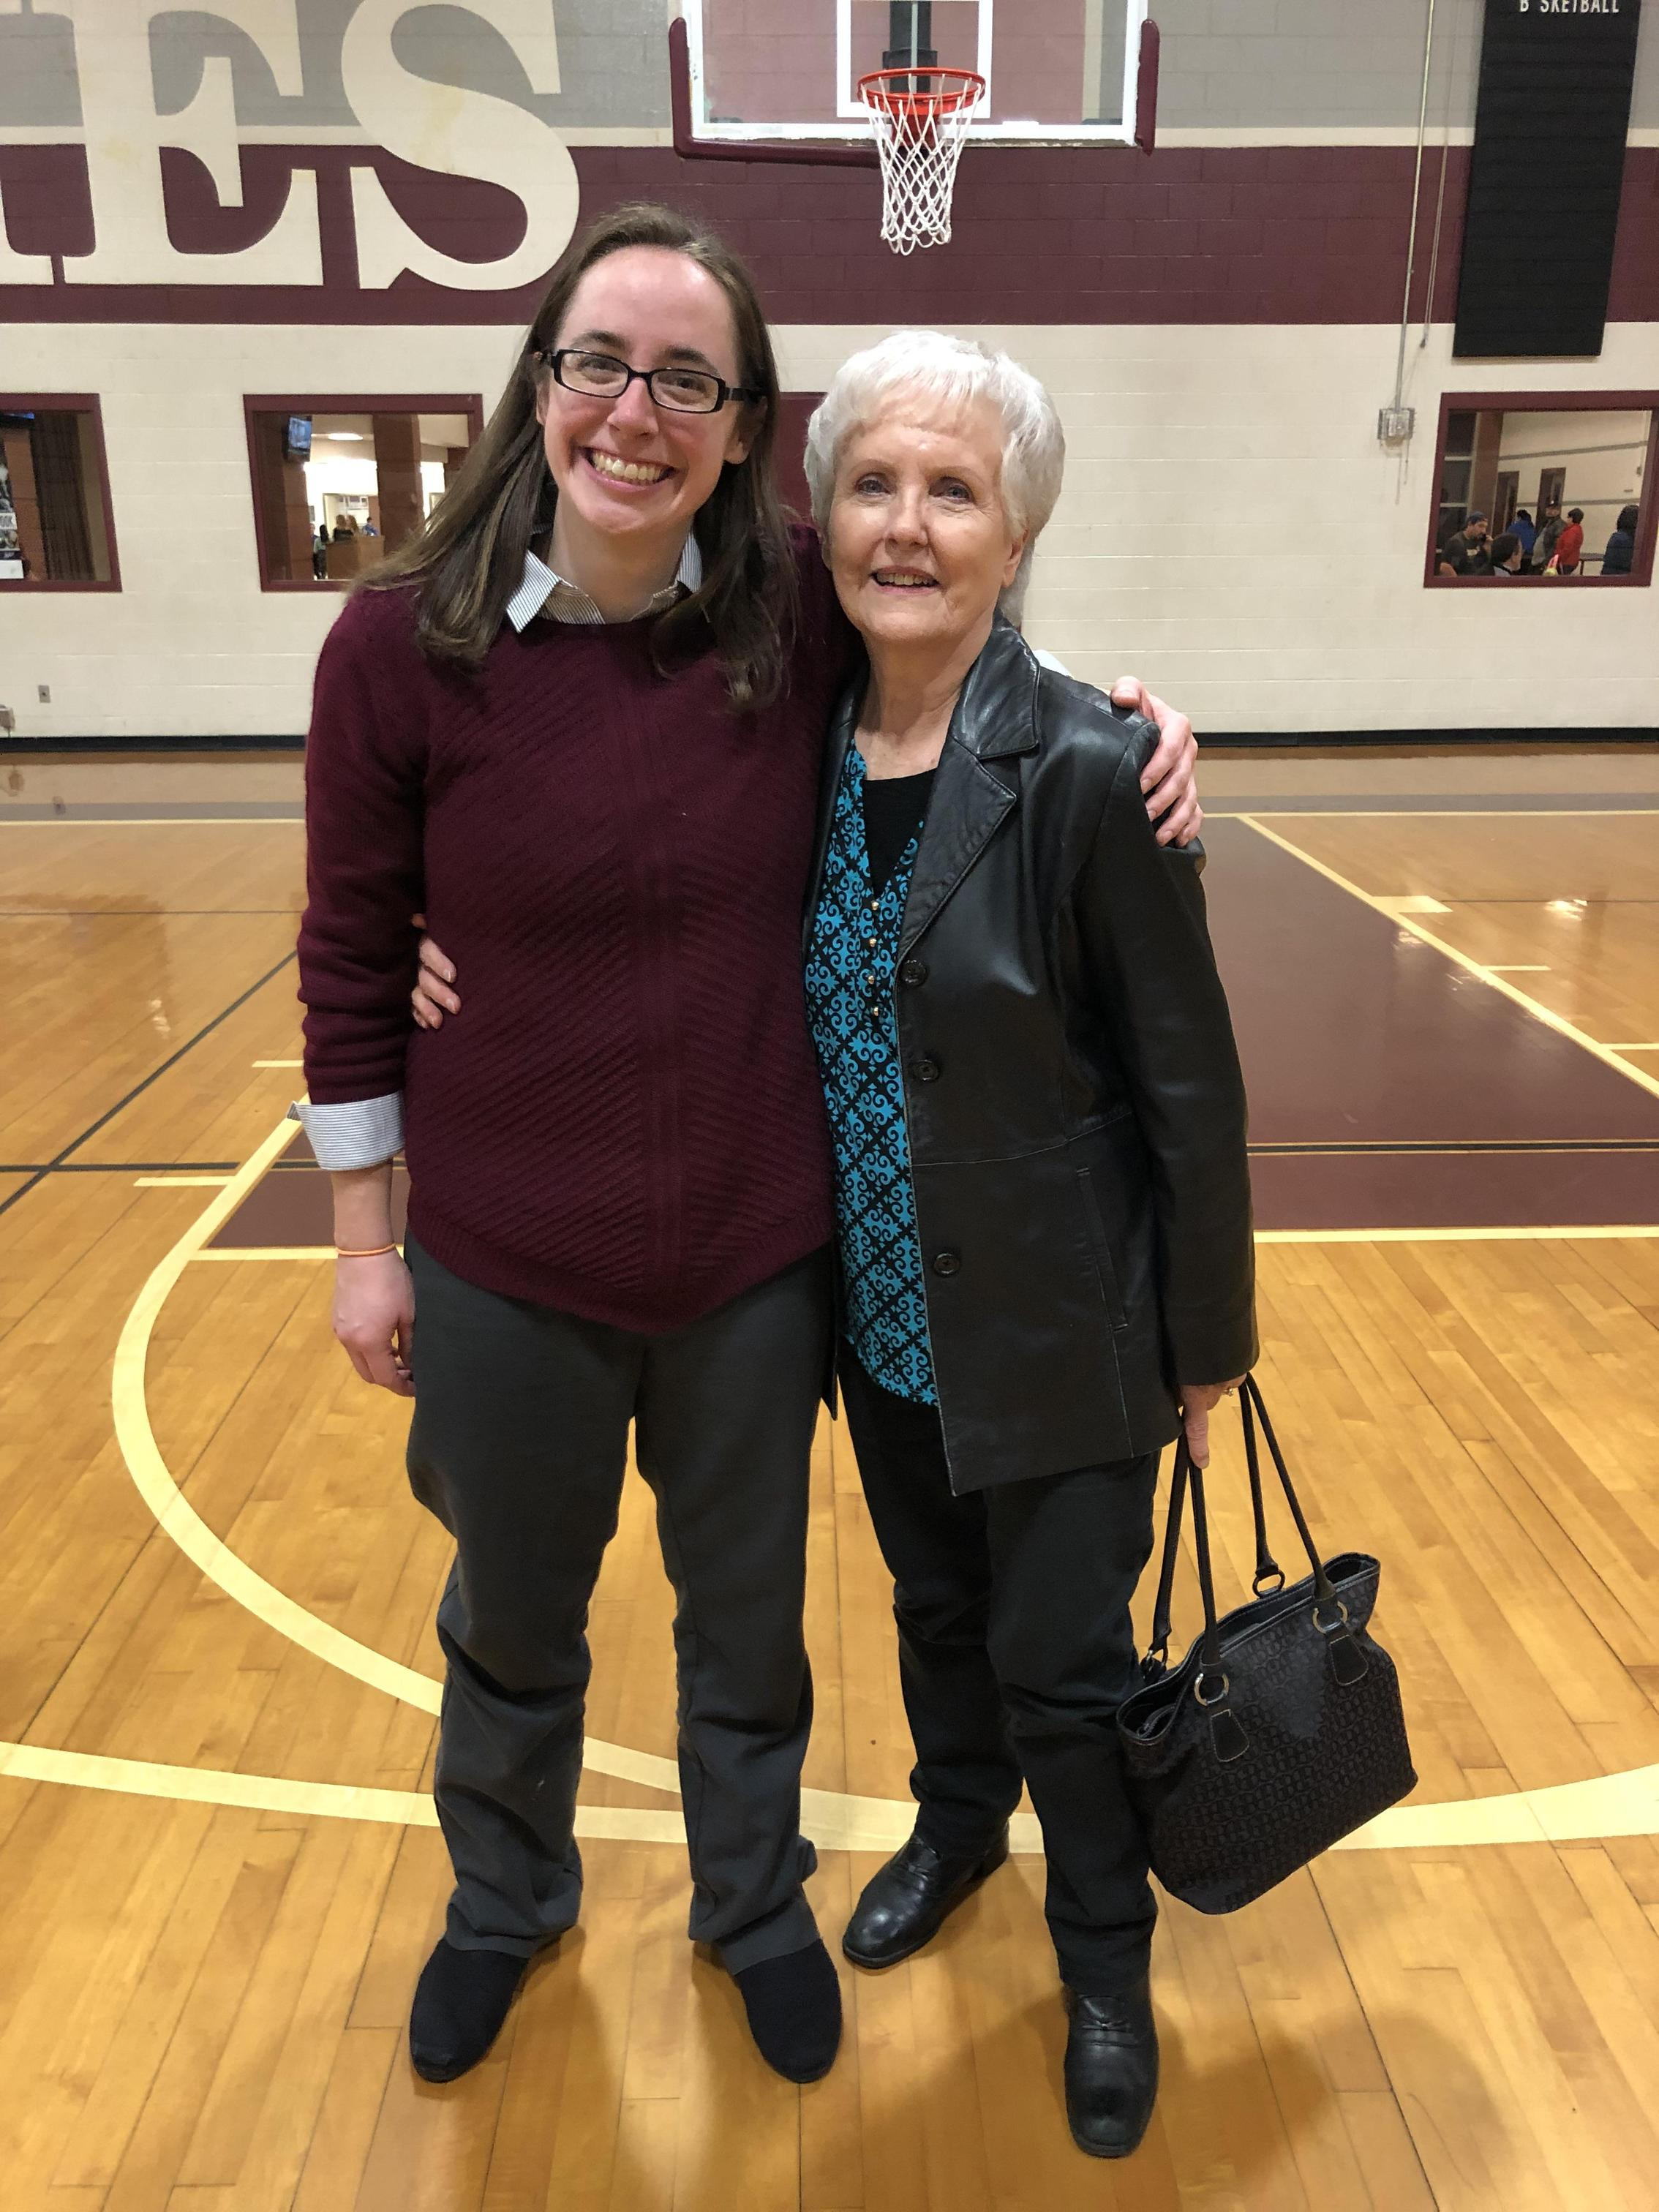 My Grandmother and me after a basketball game